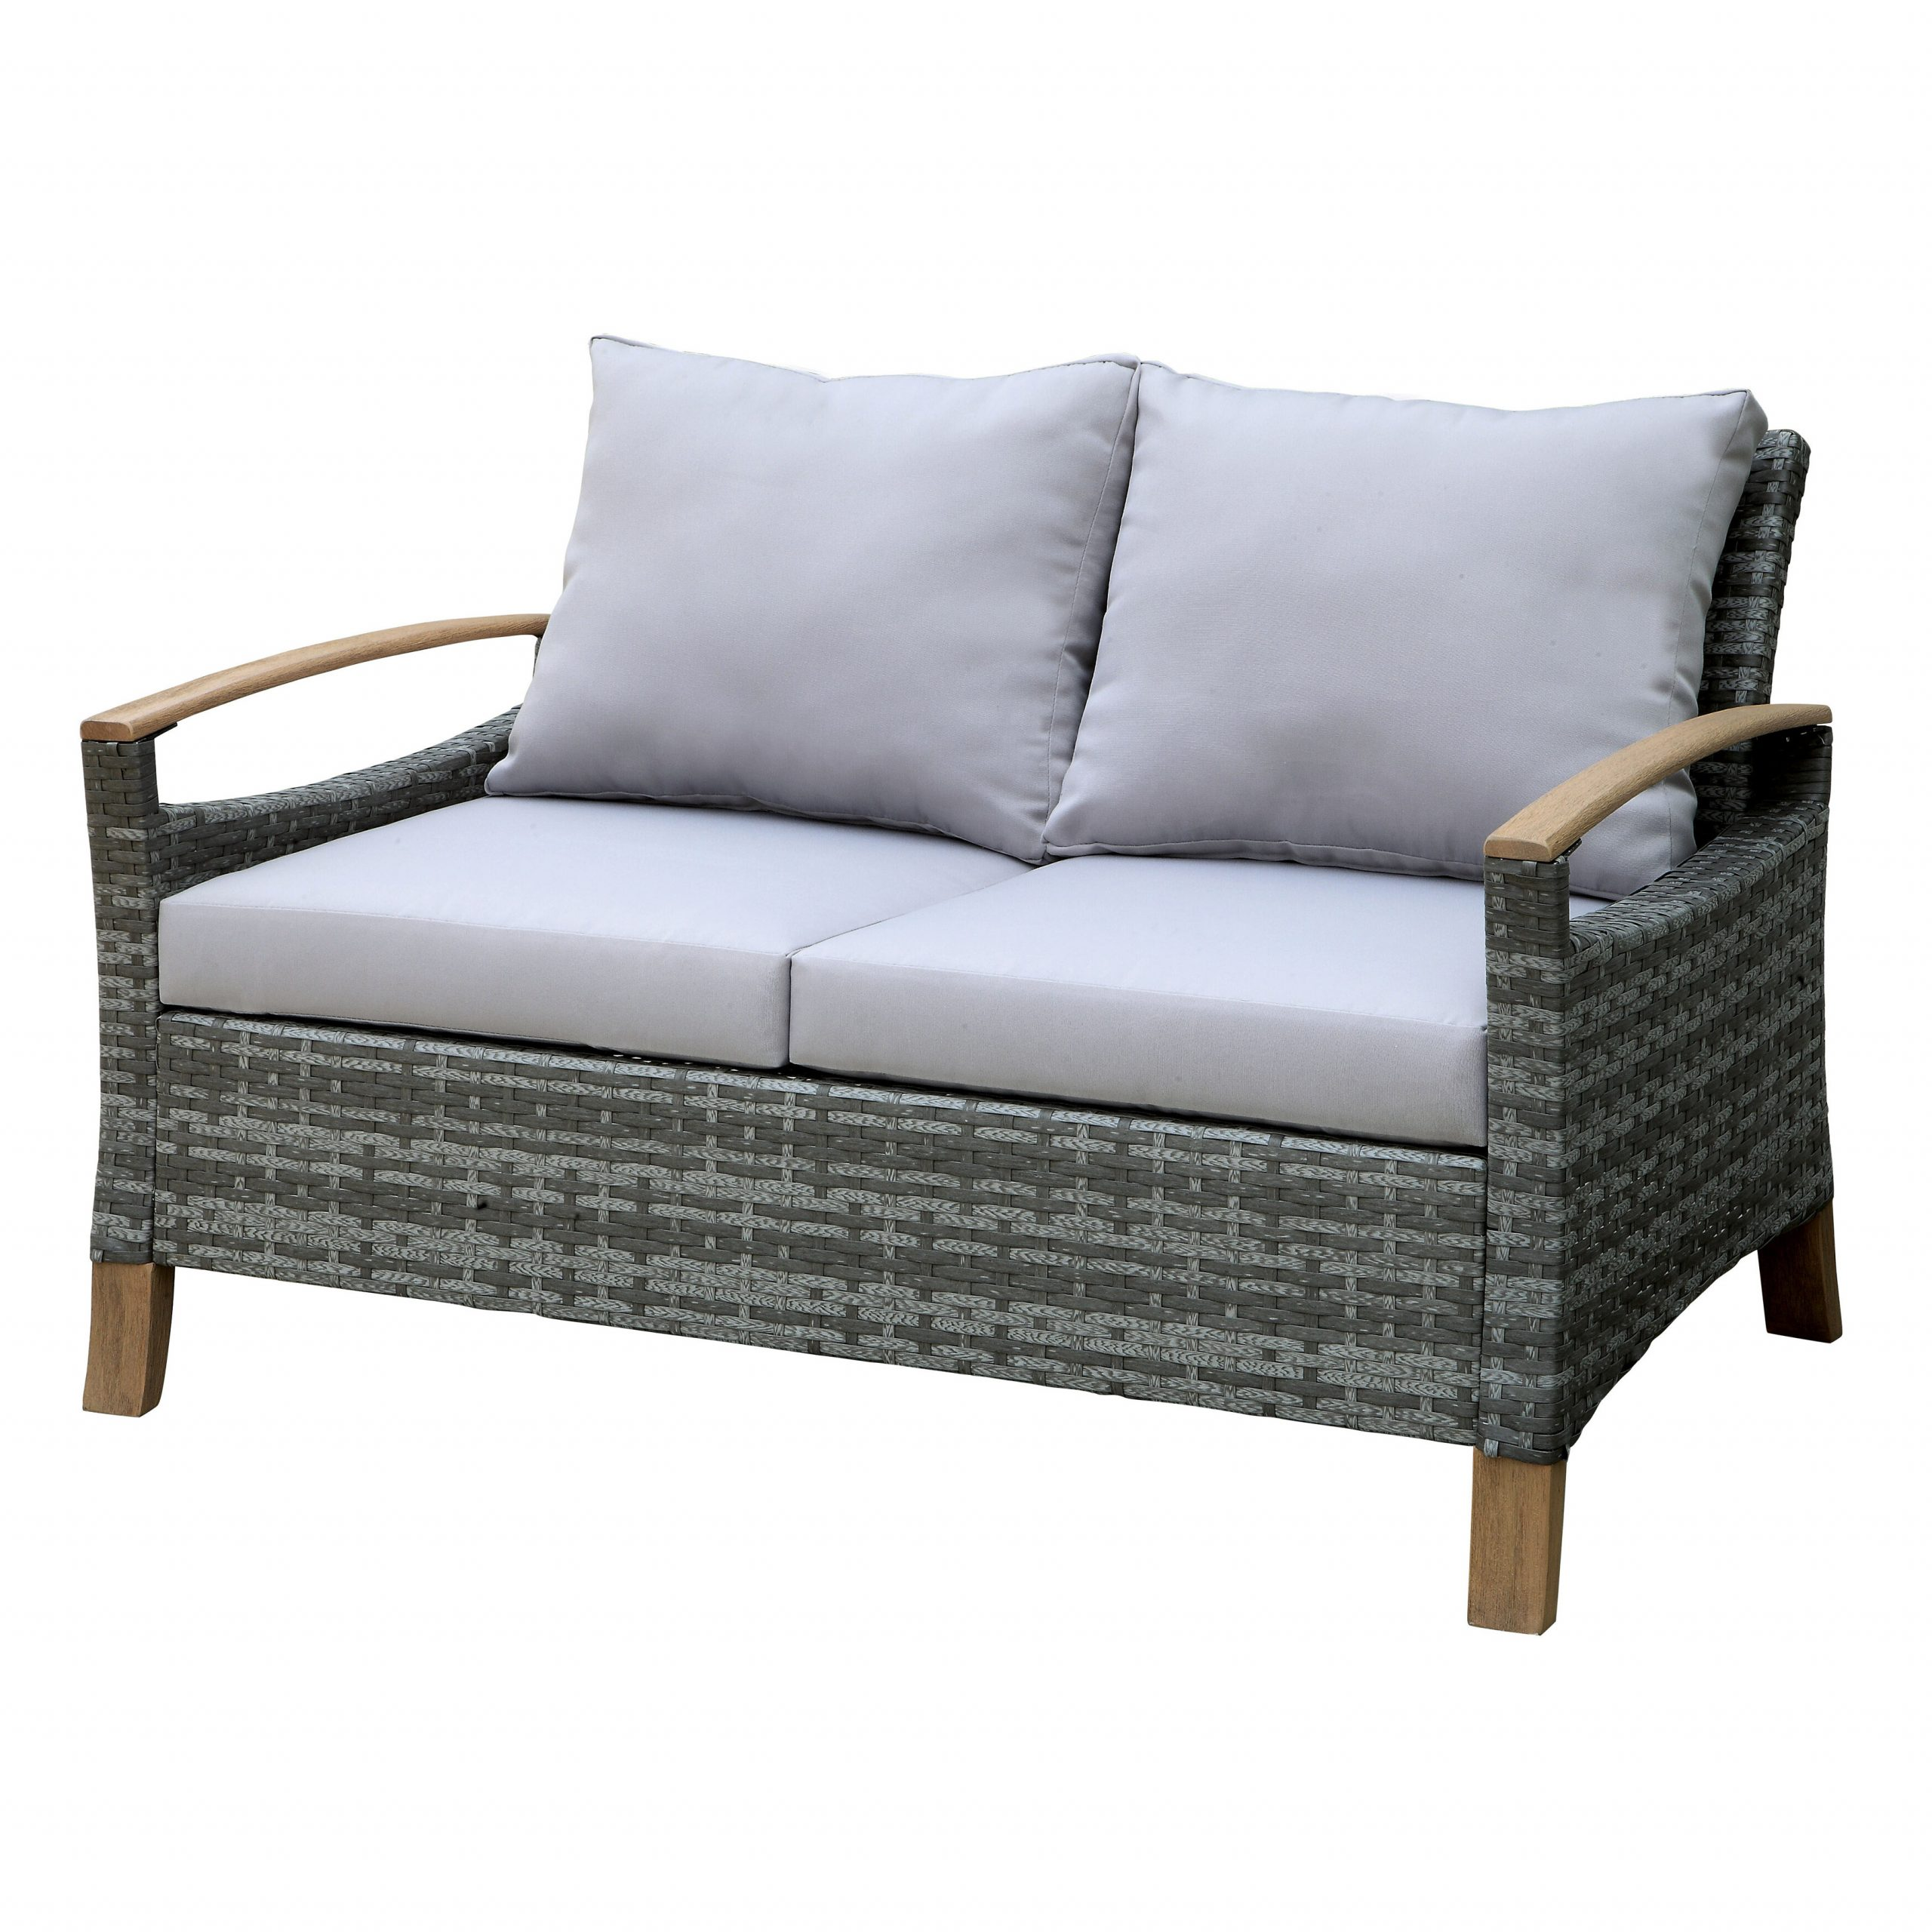 Most Recent Penniman Contemporary Loveseat With Cushions With Regard To Saleem Loveseats With Cushions (View 10 of 25)